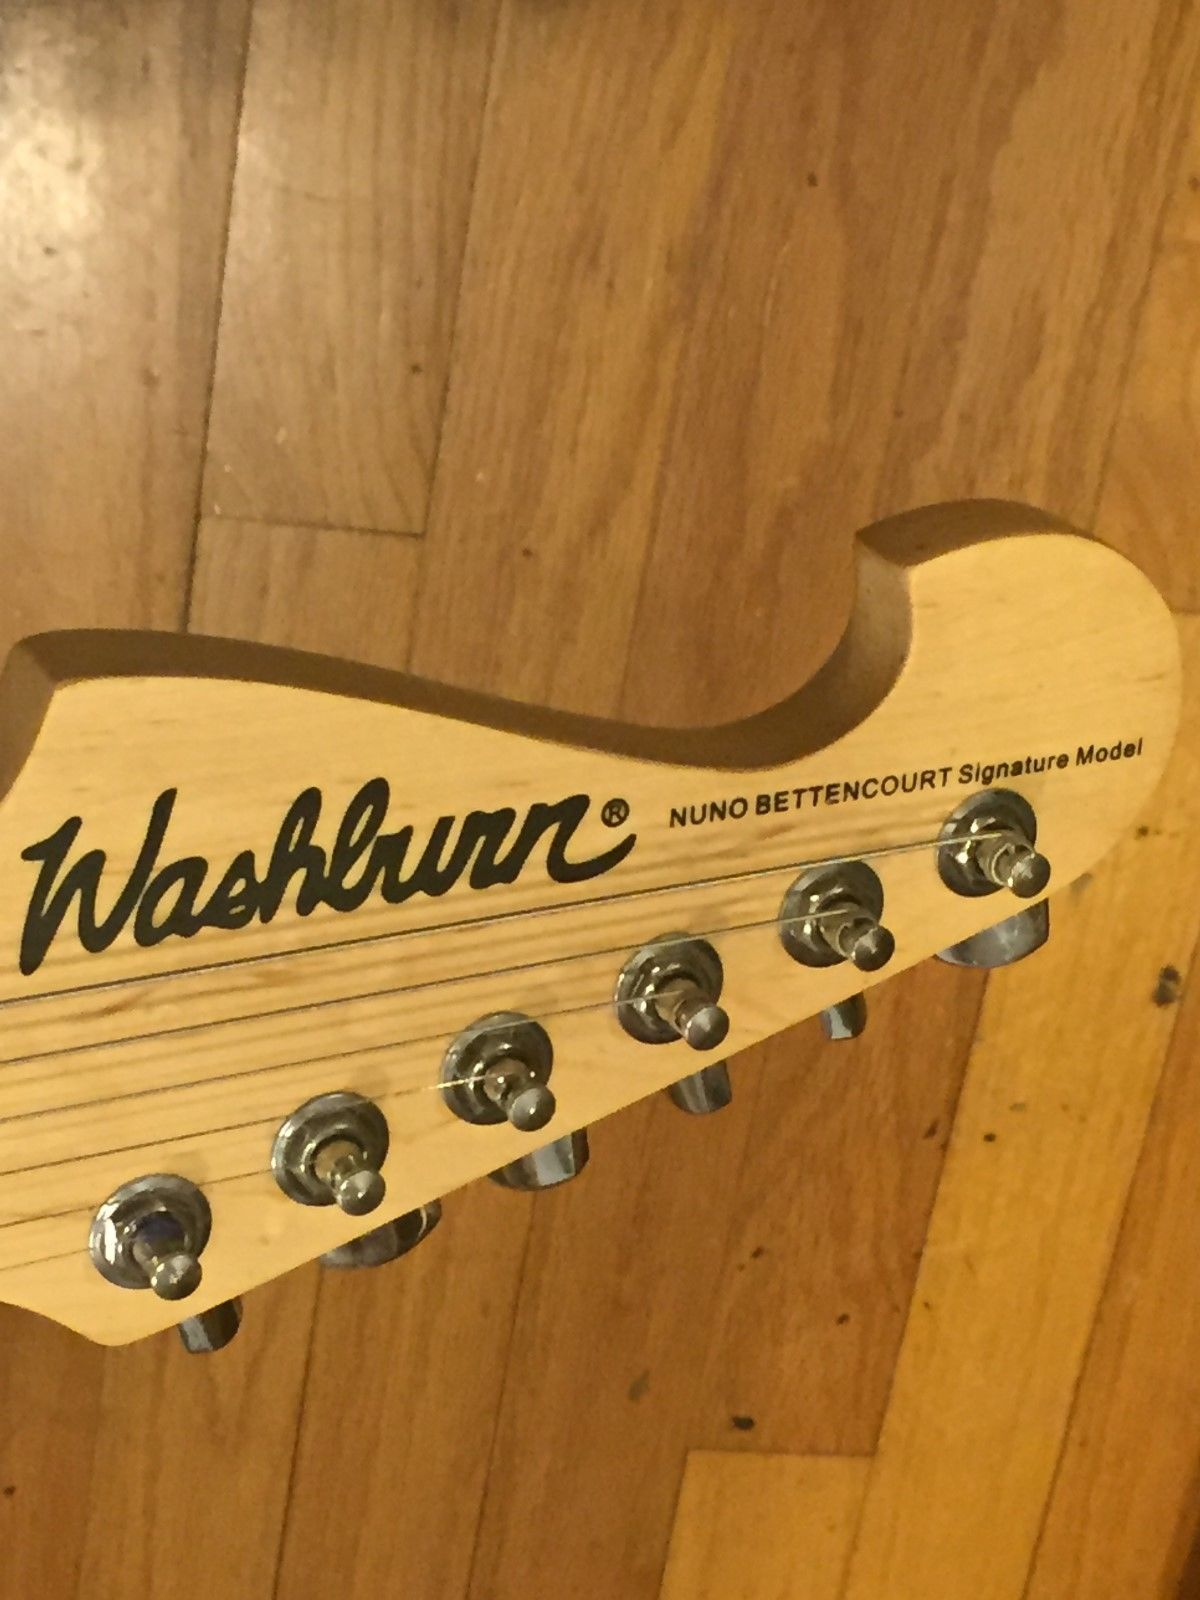 Washburn Electric Guitar Nuno Bettencourt (Signature Model)